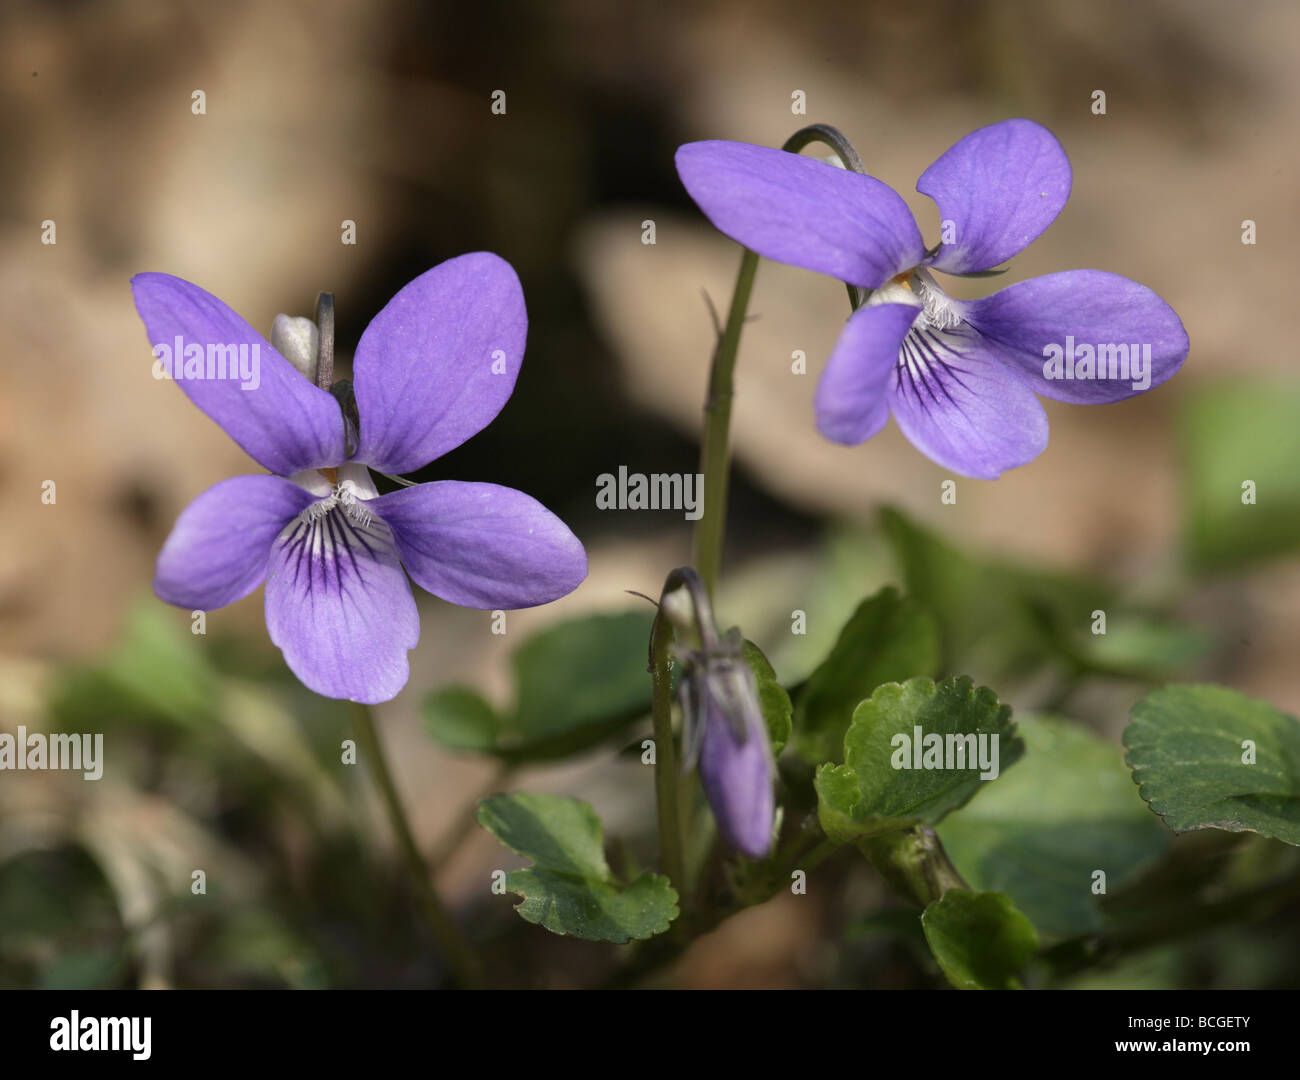 Common Dog Violet Viola riviniana - Stock Image